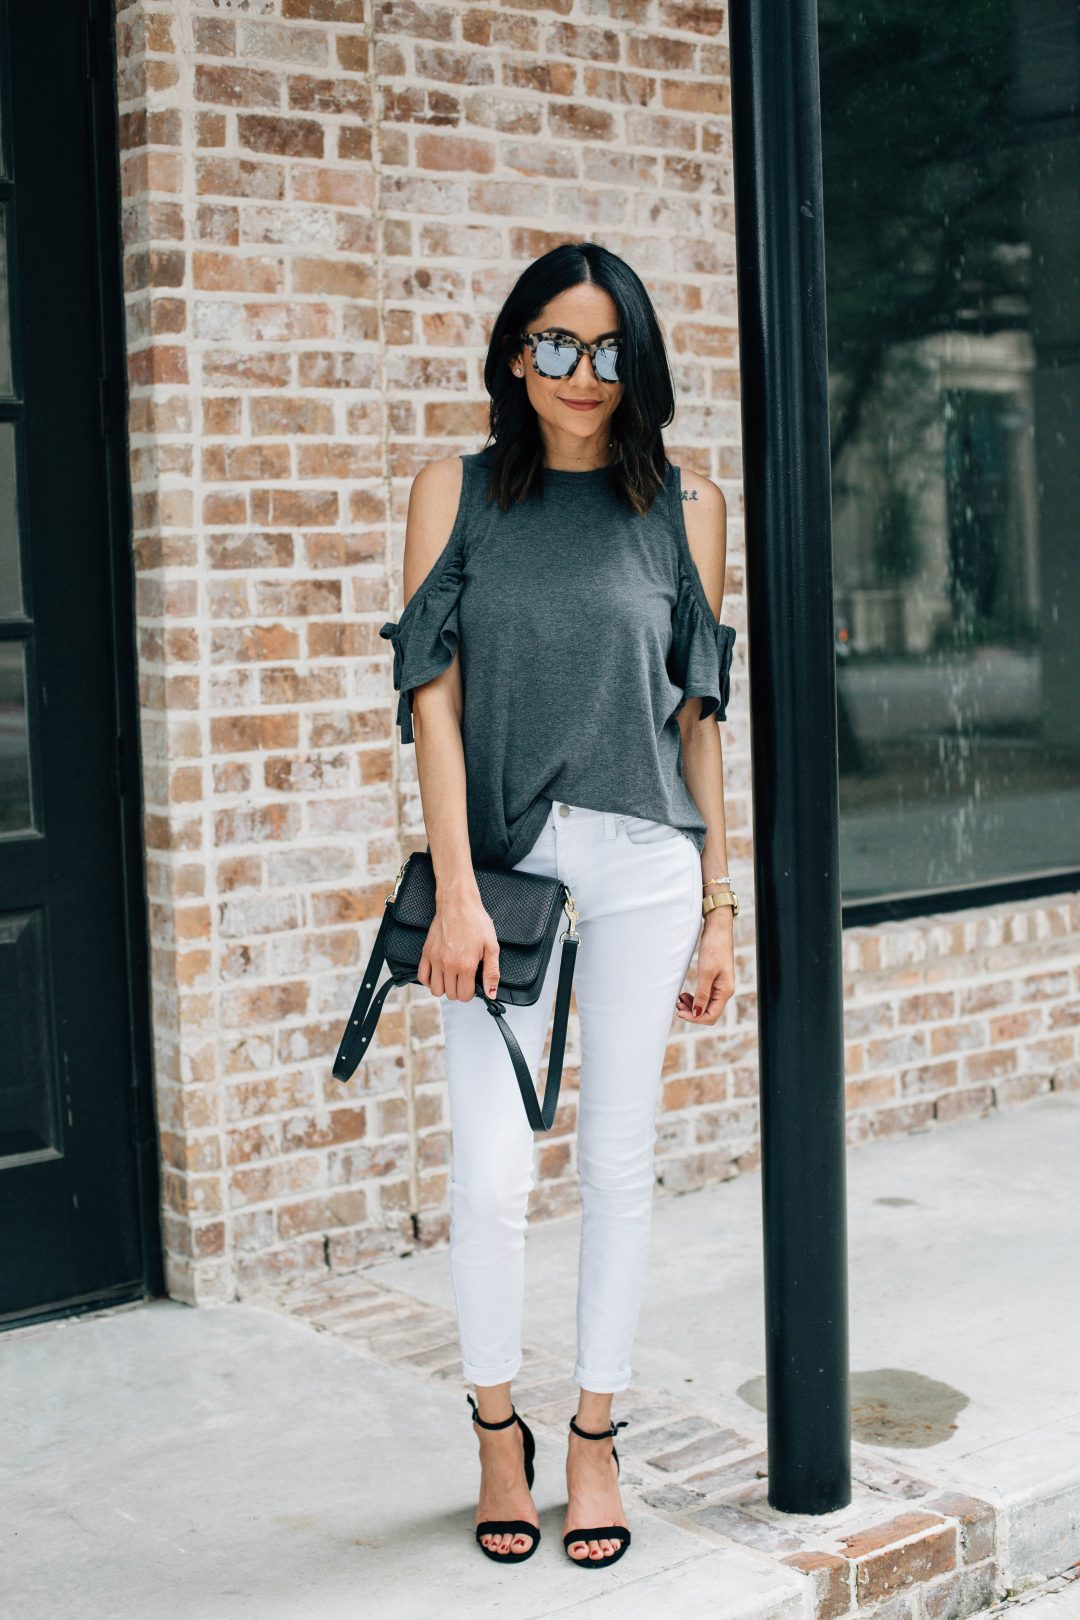 Spruce up your weekend look with a cold shoulder top